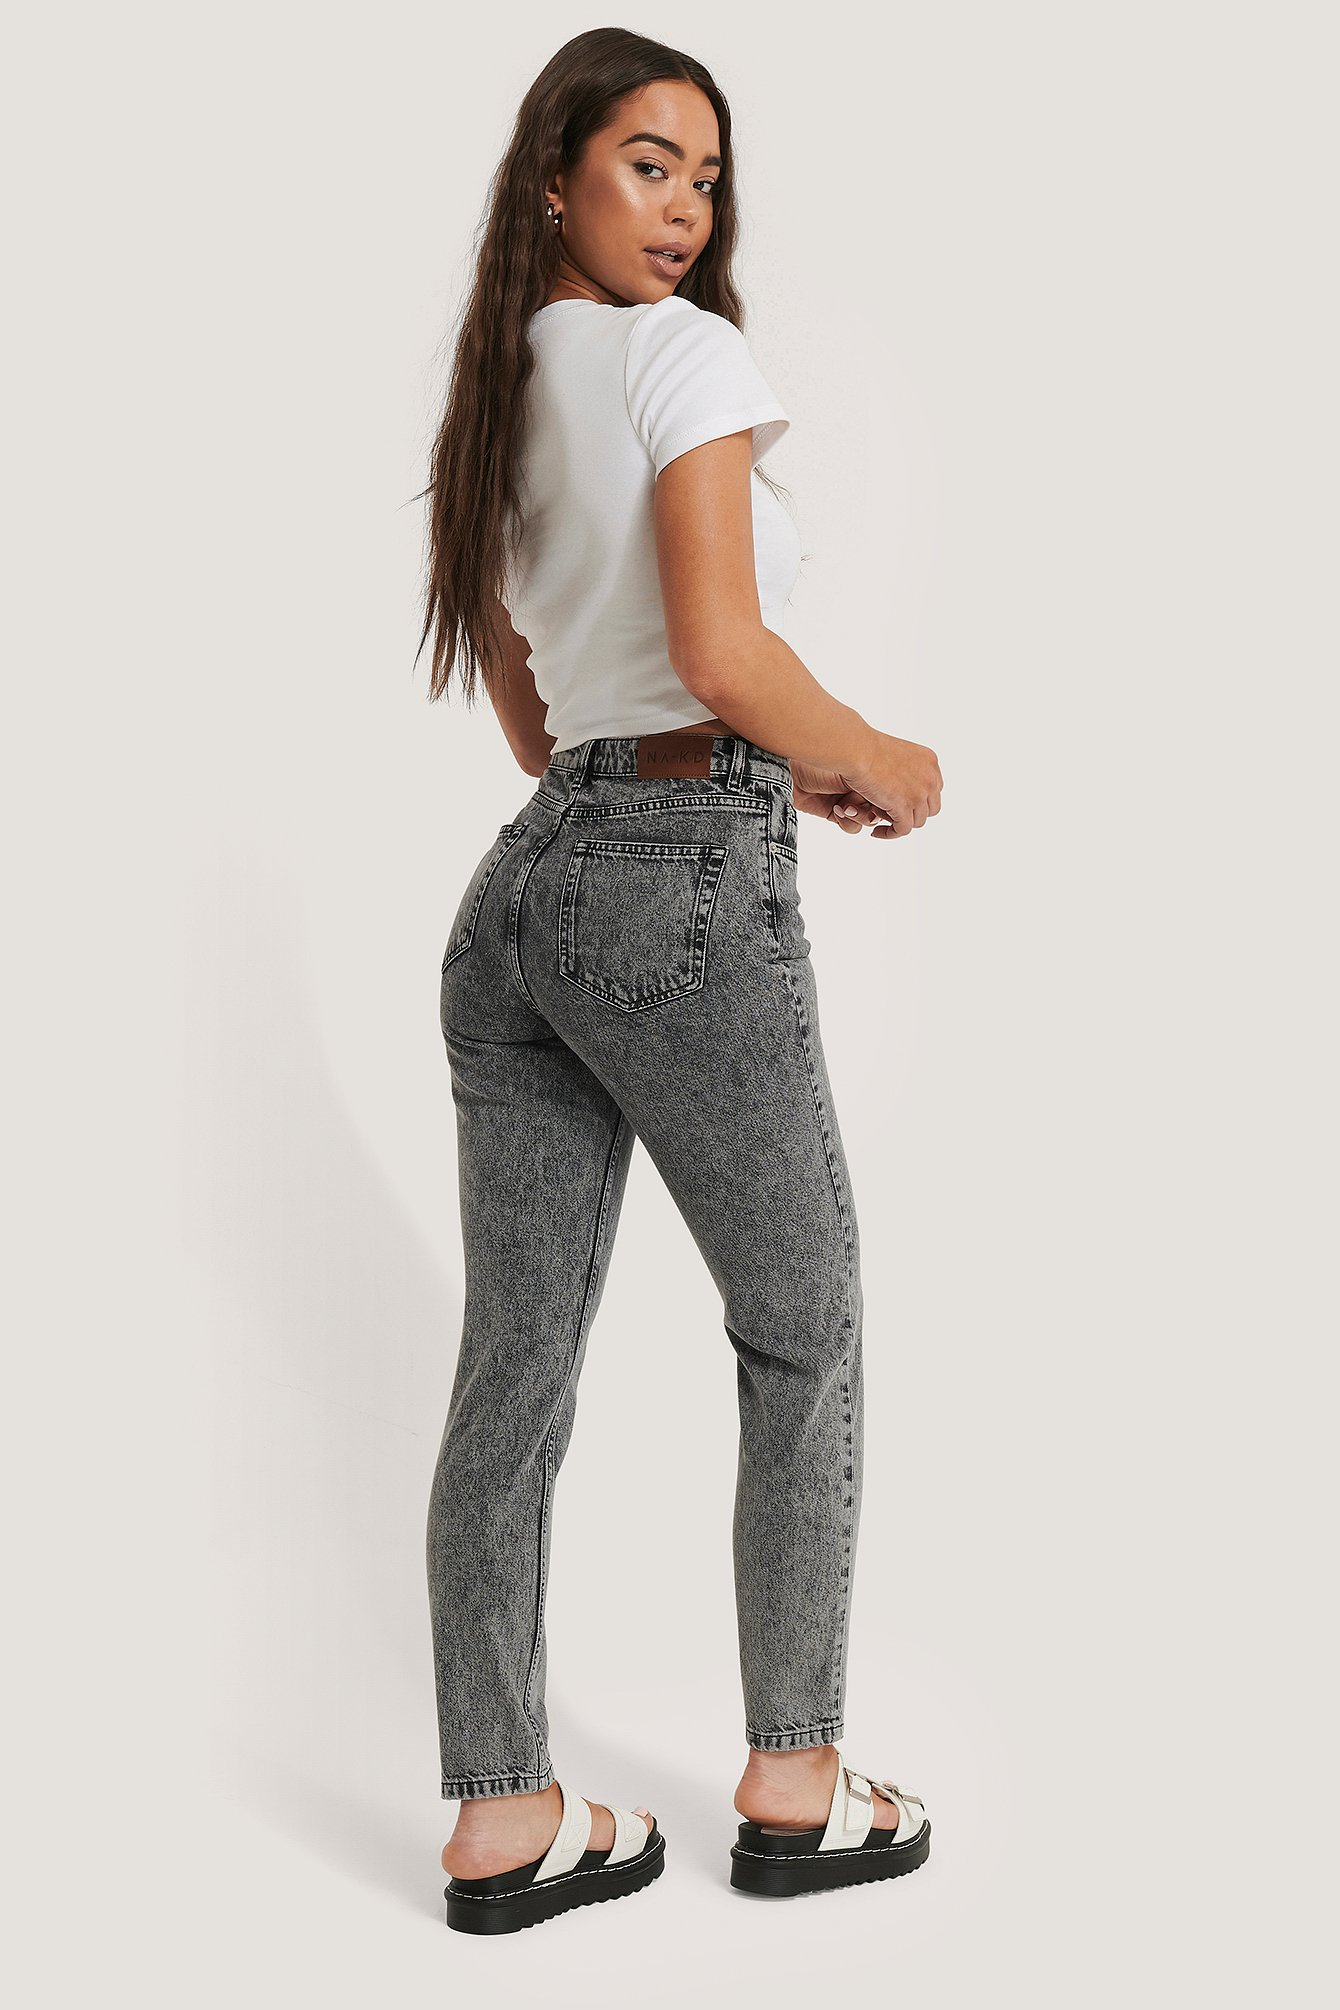 Grey Schmale Jeans Mit Hoher Taille